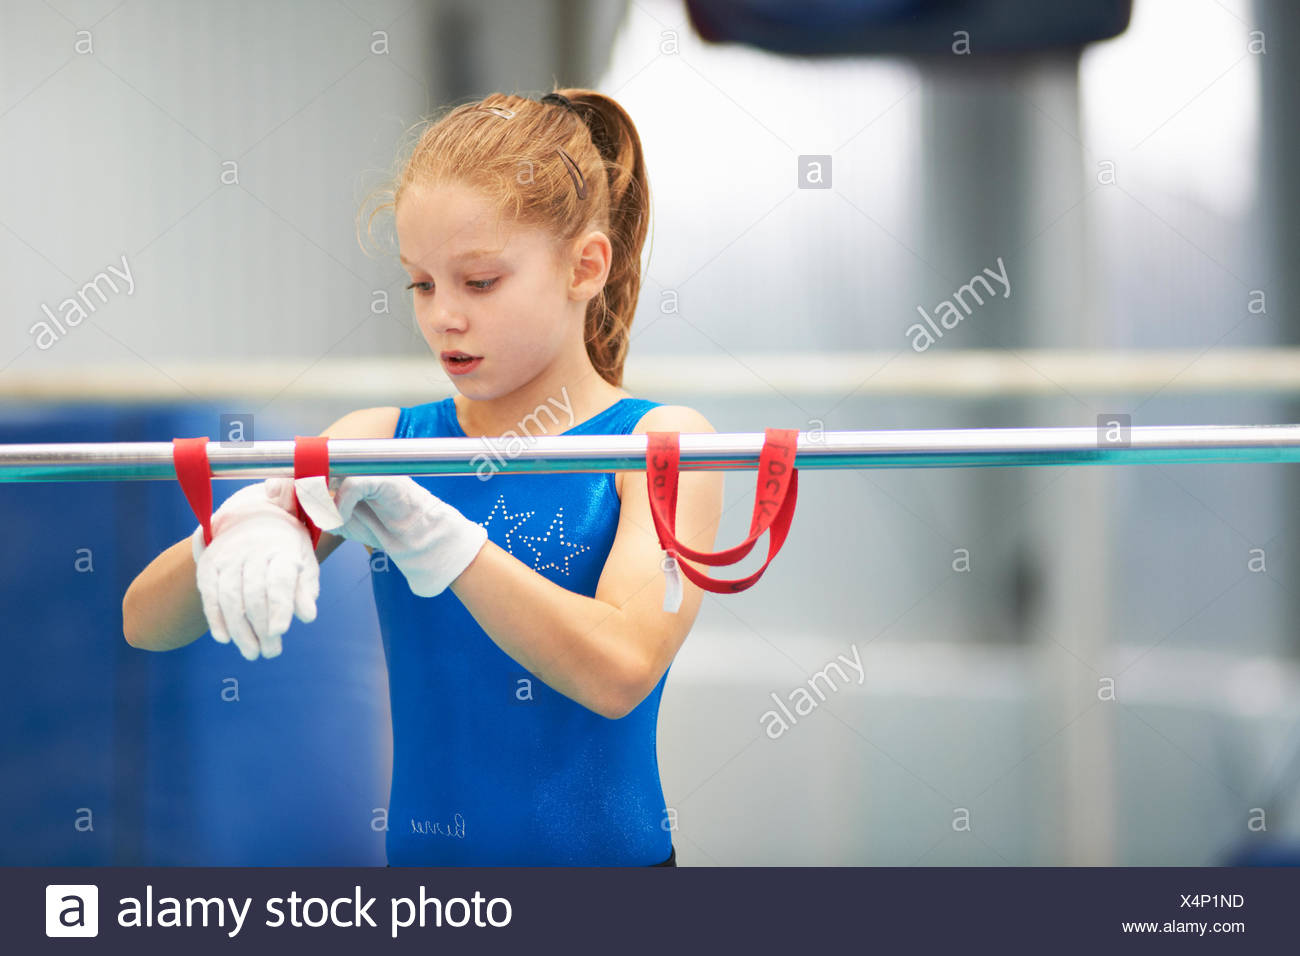 Young gymnast using training wrist straps to aid practise on bars - Stock Image